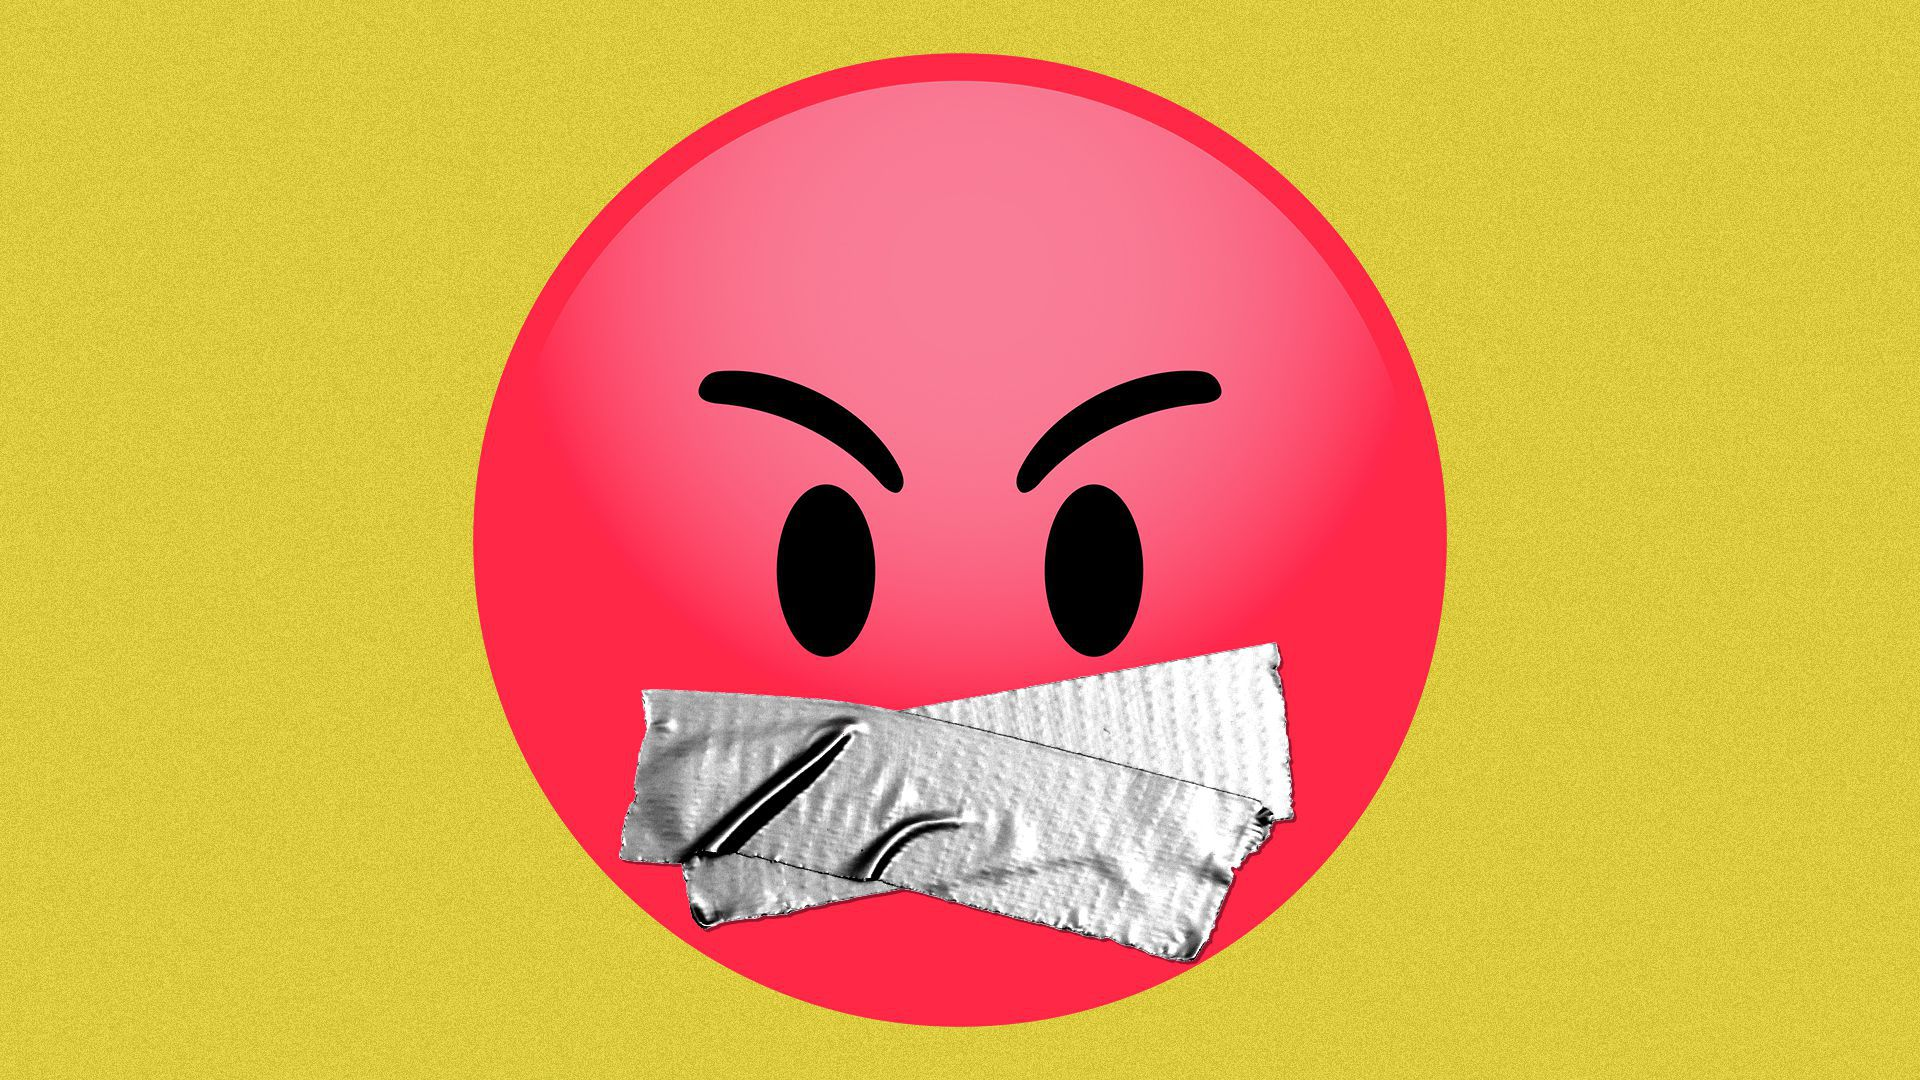 Illustration of an angry emoji with duct tape over its mouth.